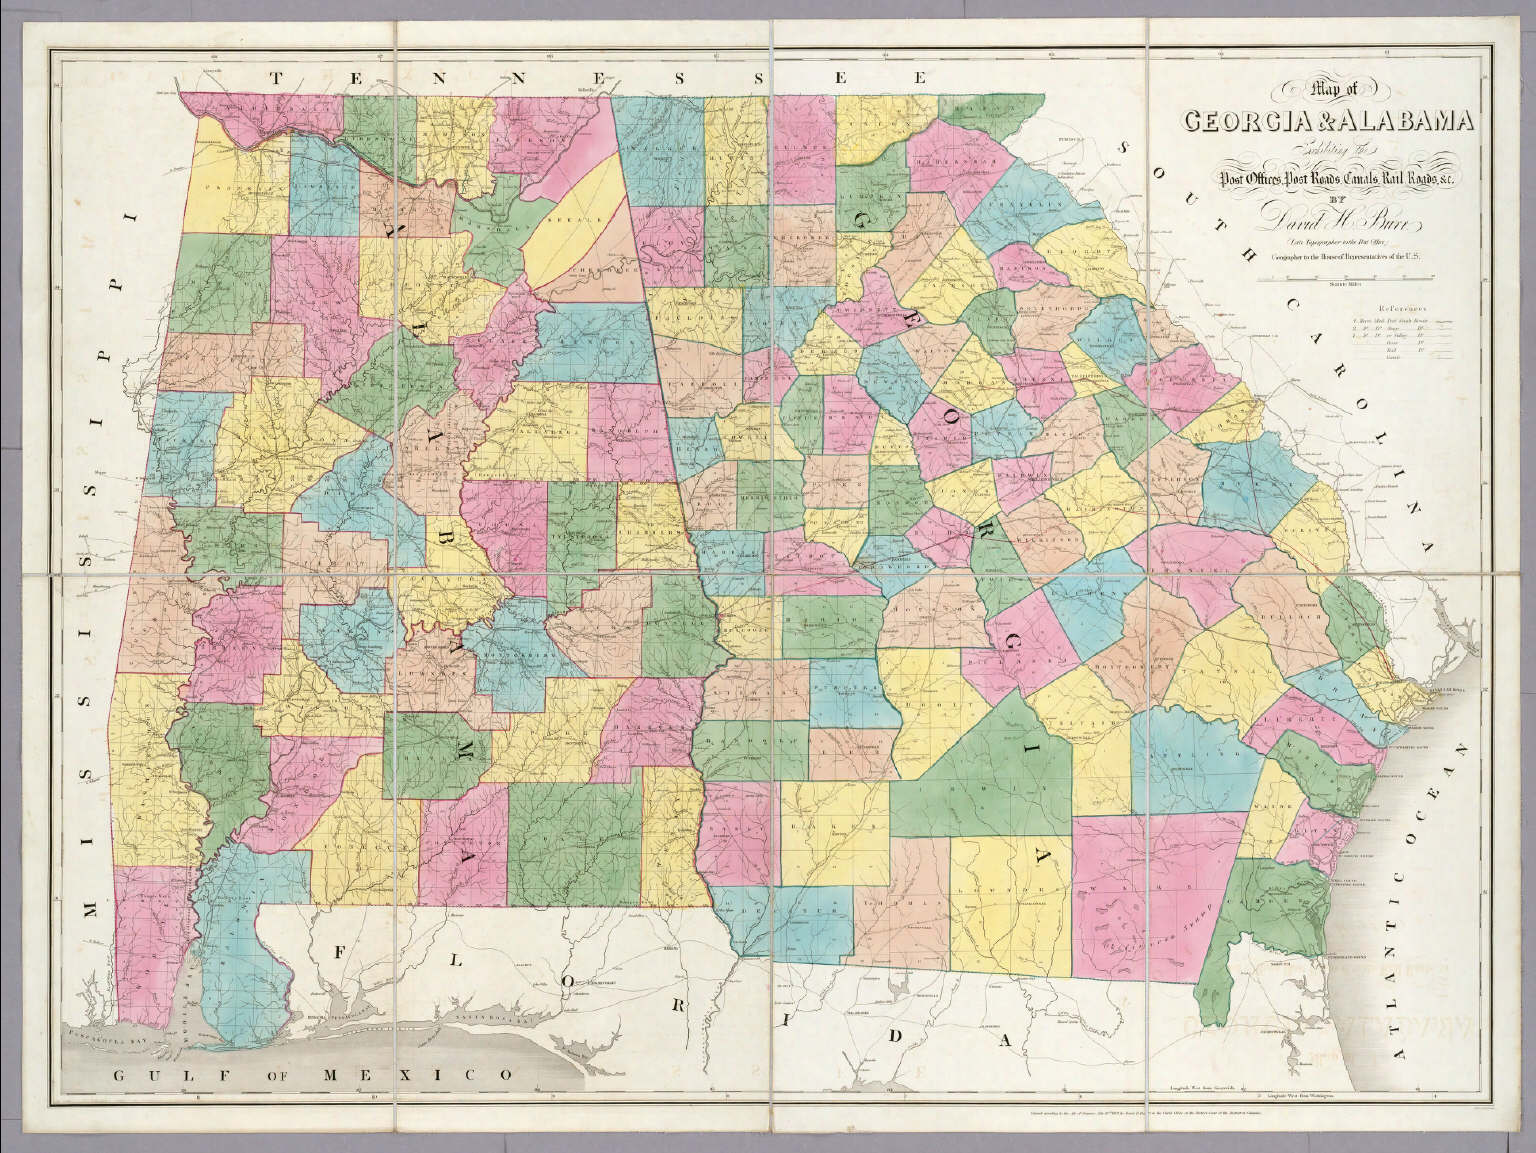 Map of Georgia & Alabama. / Burr, David H., 1803-1875 / 1839